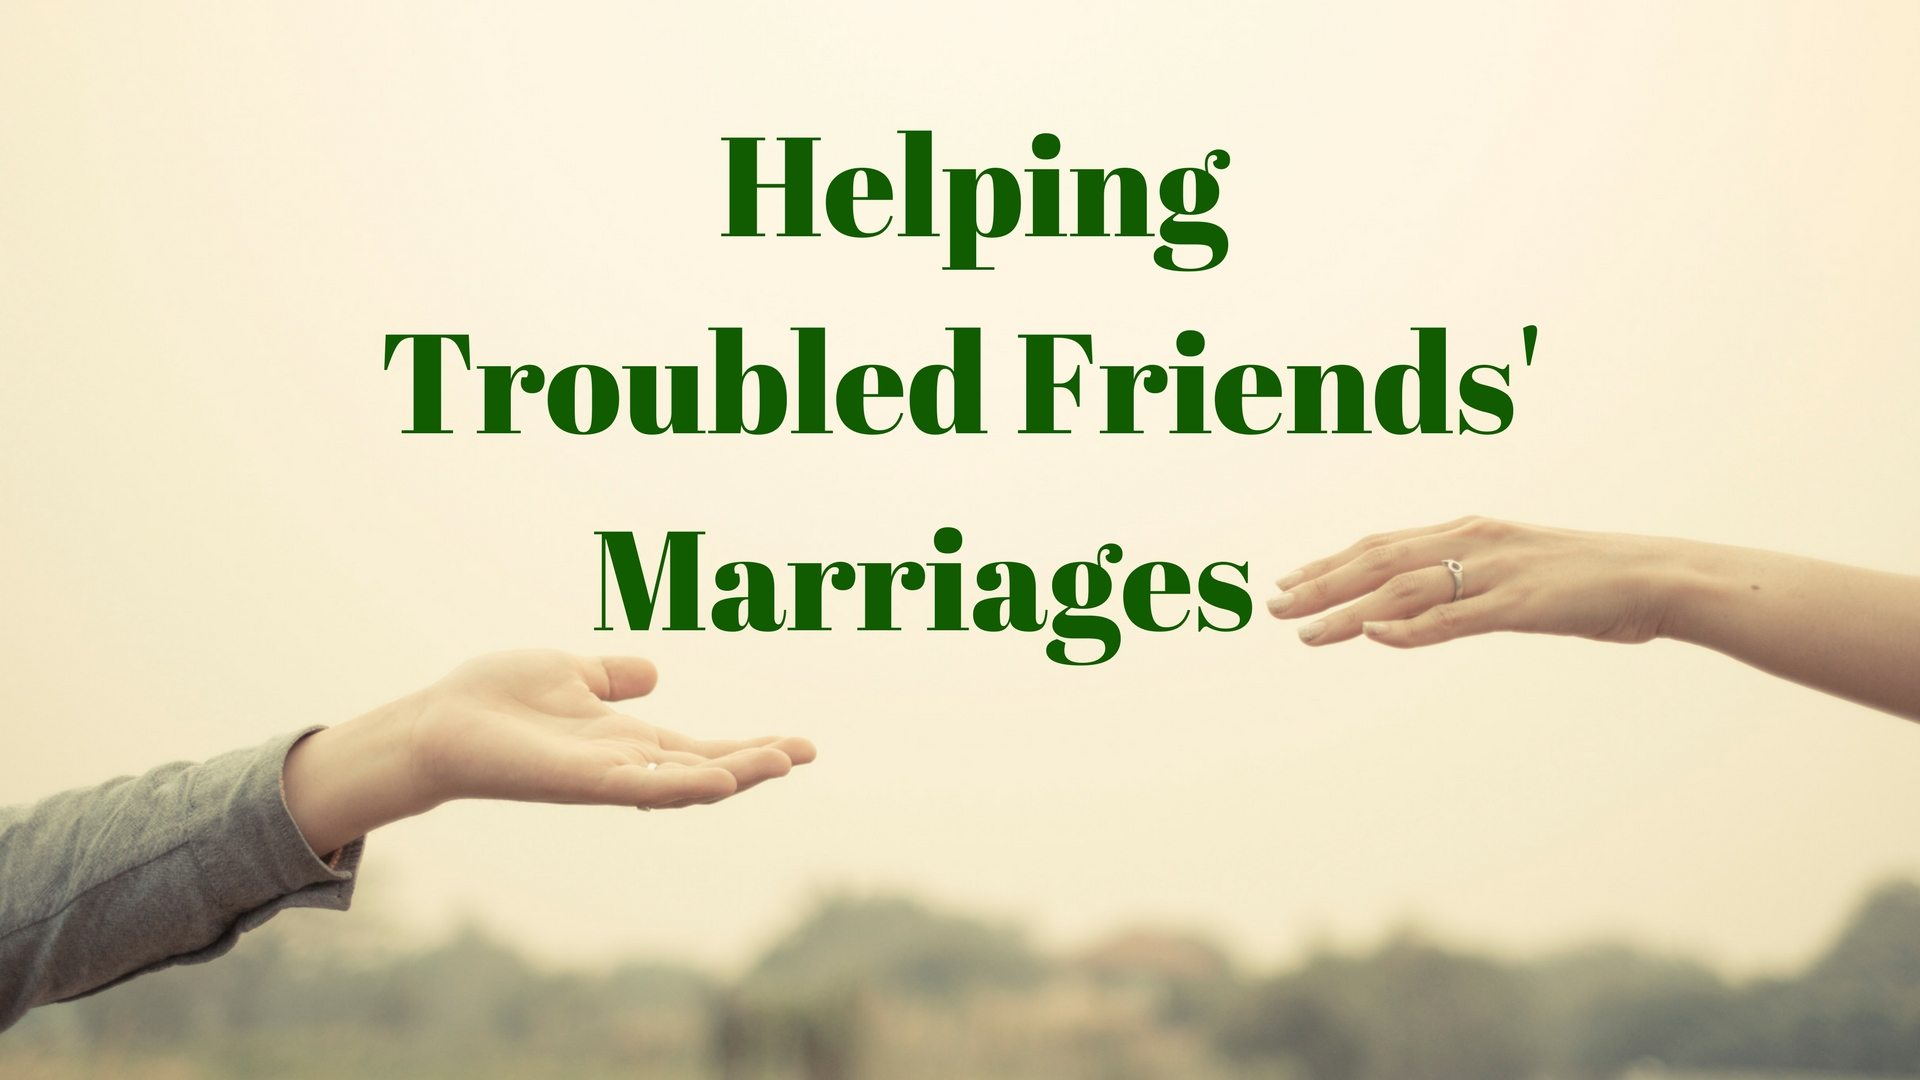 Helping Troubled Friends' Marriages - Graphic stock - canva